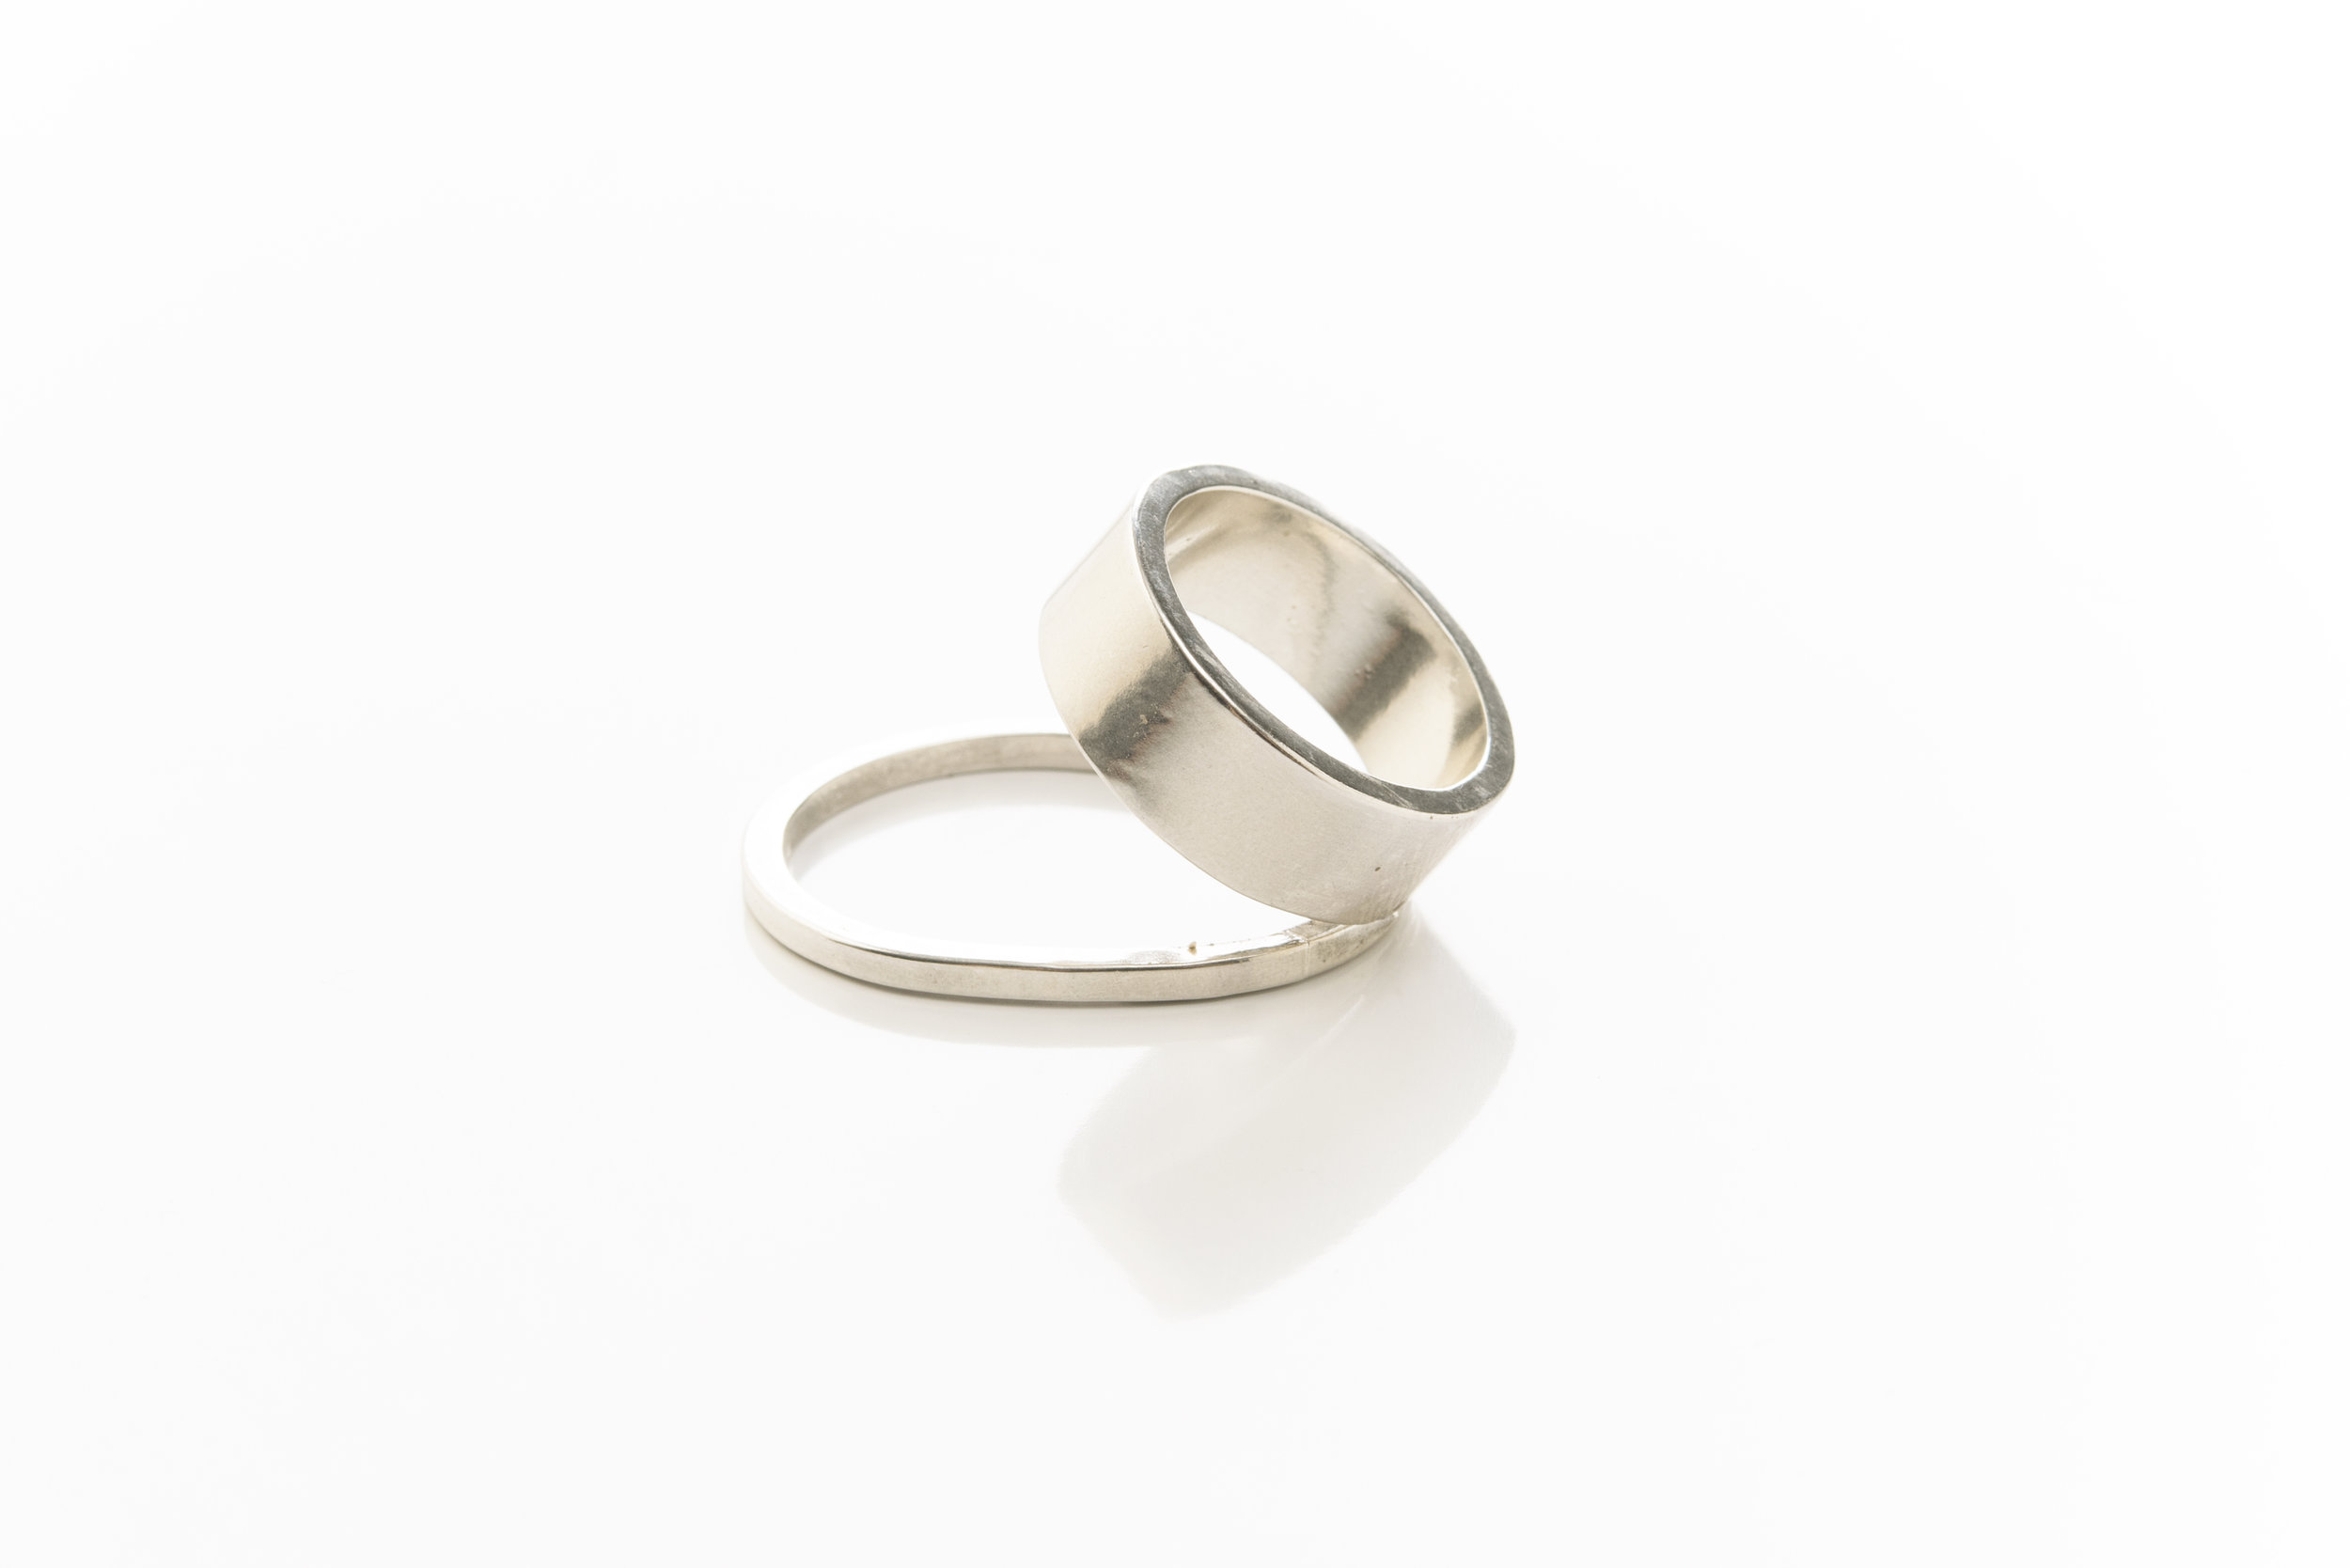 14_ulterior_Double band ring_6.jpg